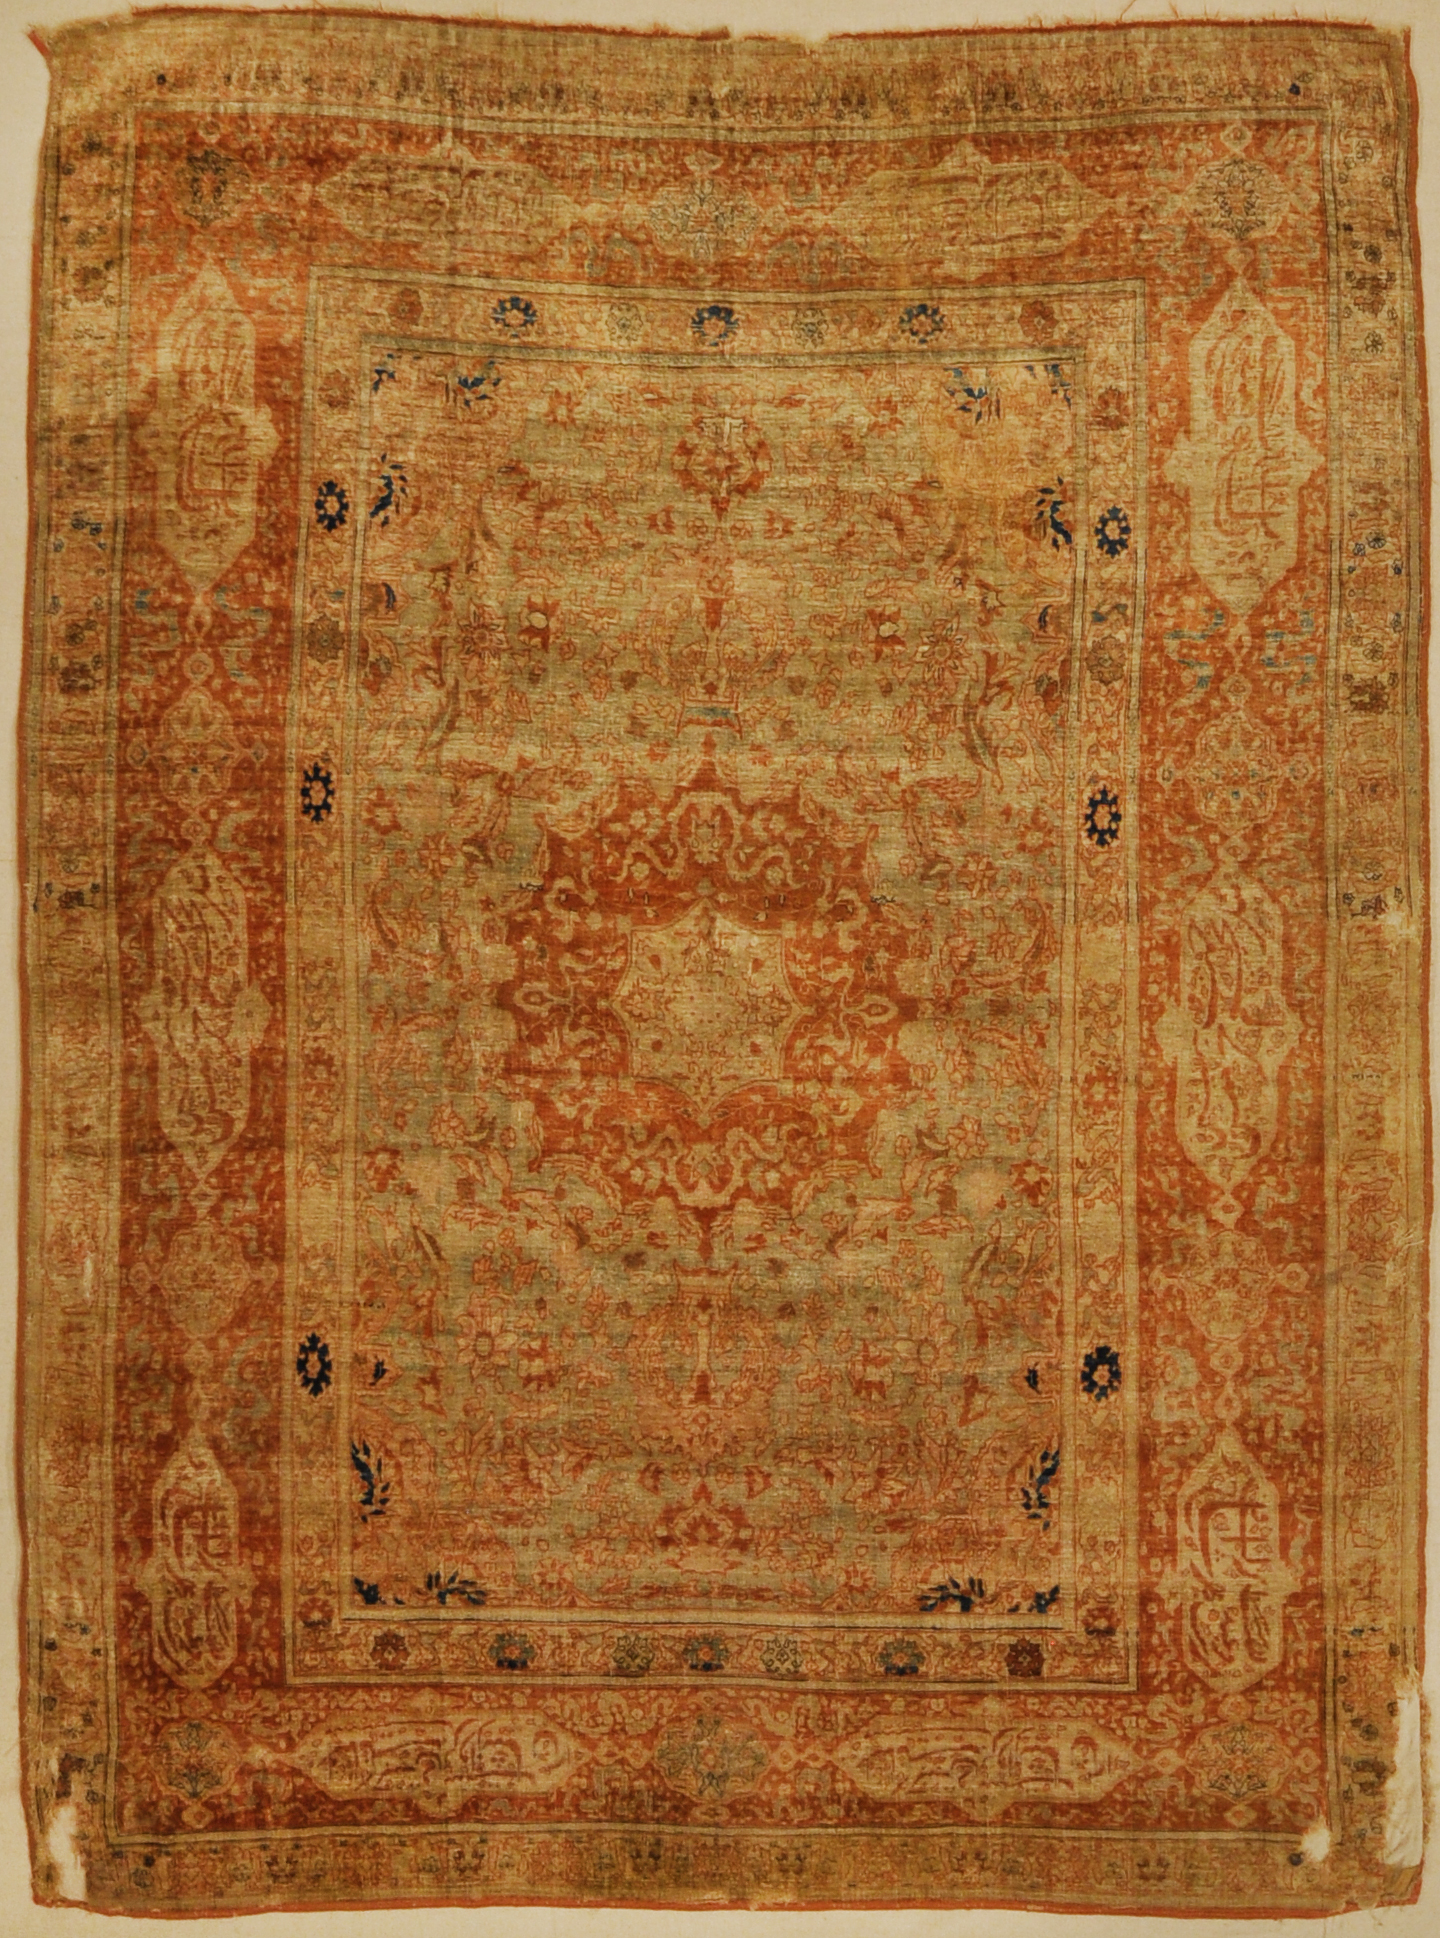 Rare 1800s Classical Silk Tabriz from Northwest Persia. Handmade in Persia. Antique rug sold by Santa Barbara Design Center.